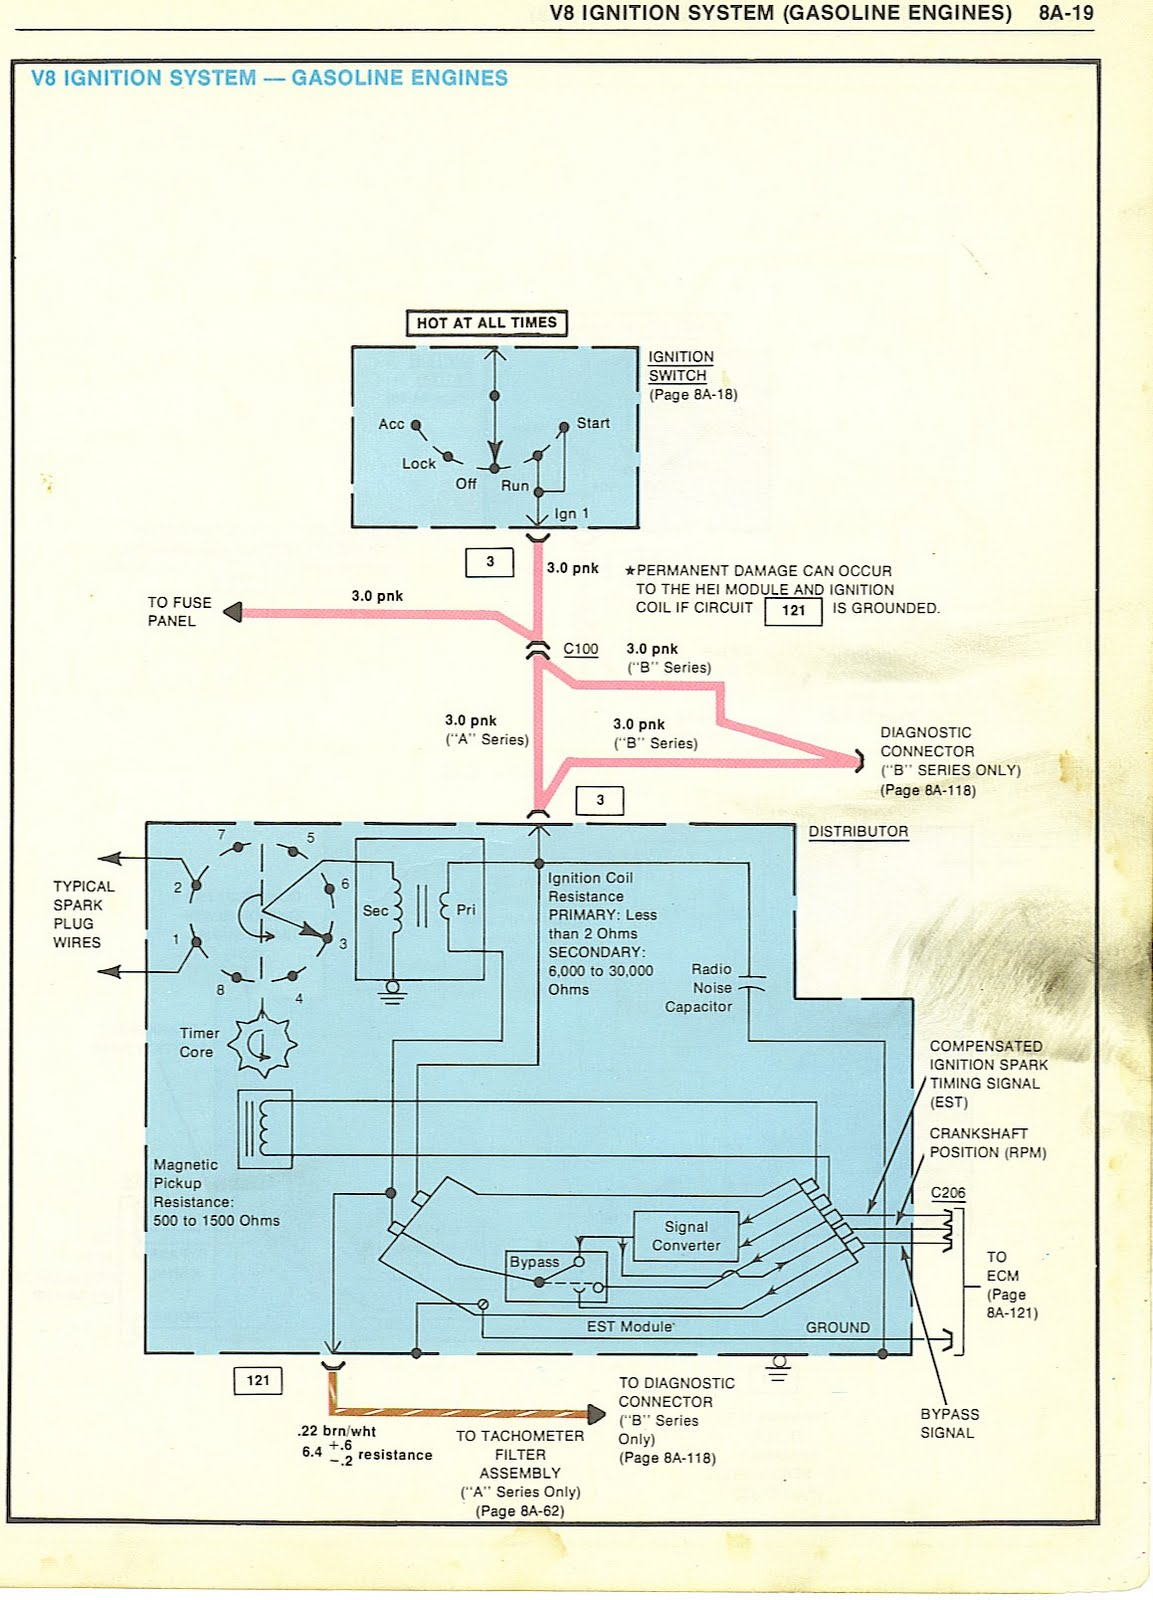 Wiring Diagram Chevrolet Malibu V8 Ignition System Wiring Diagram ...